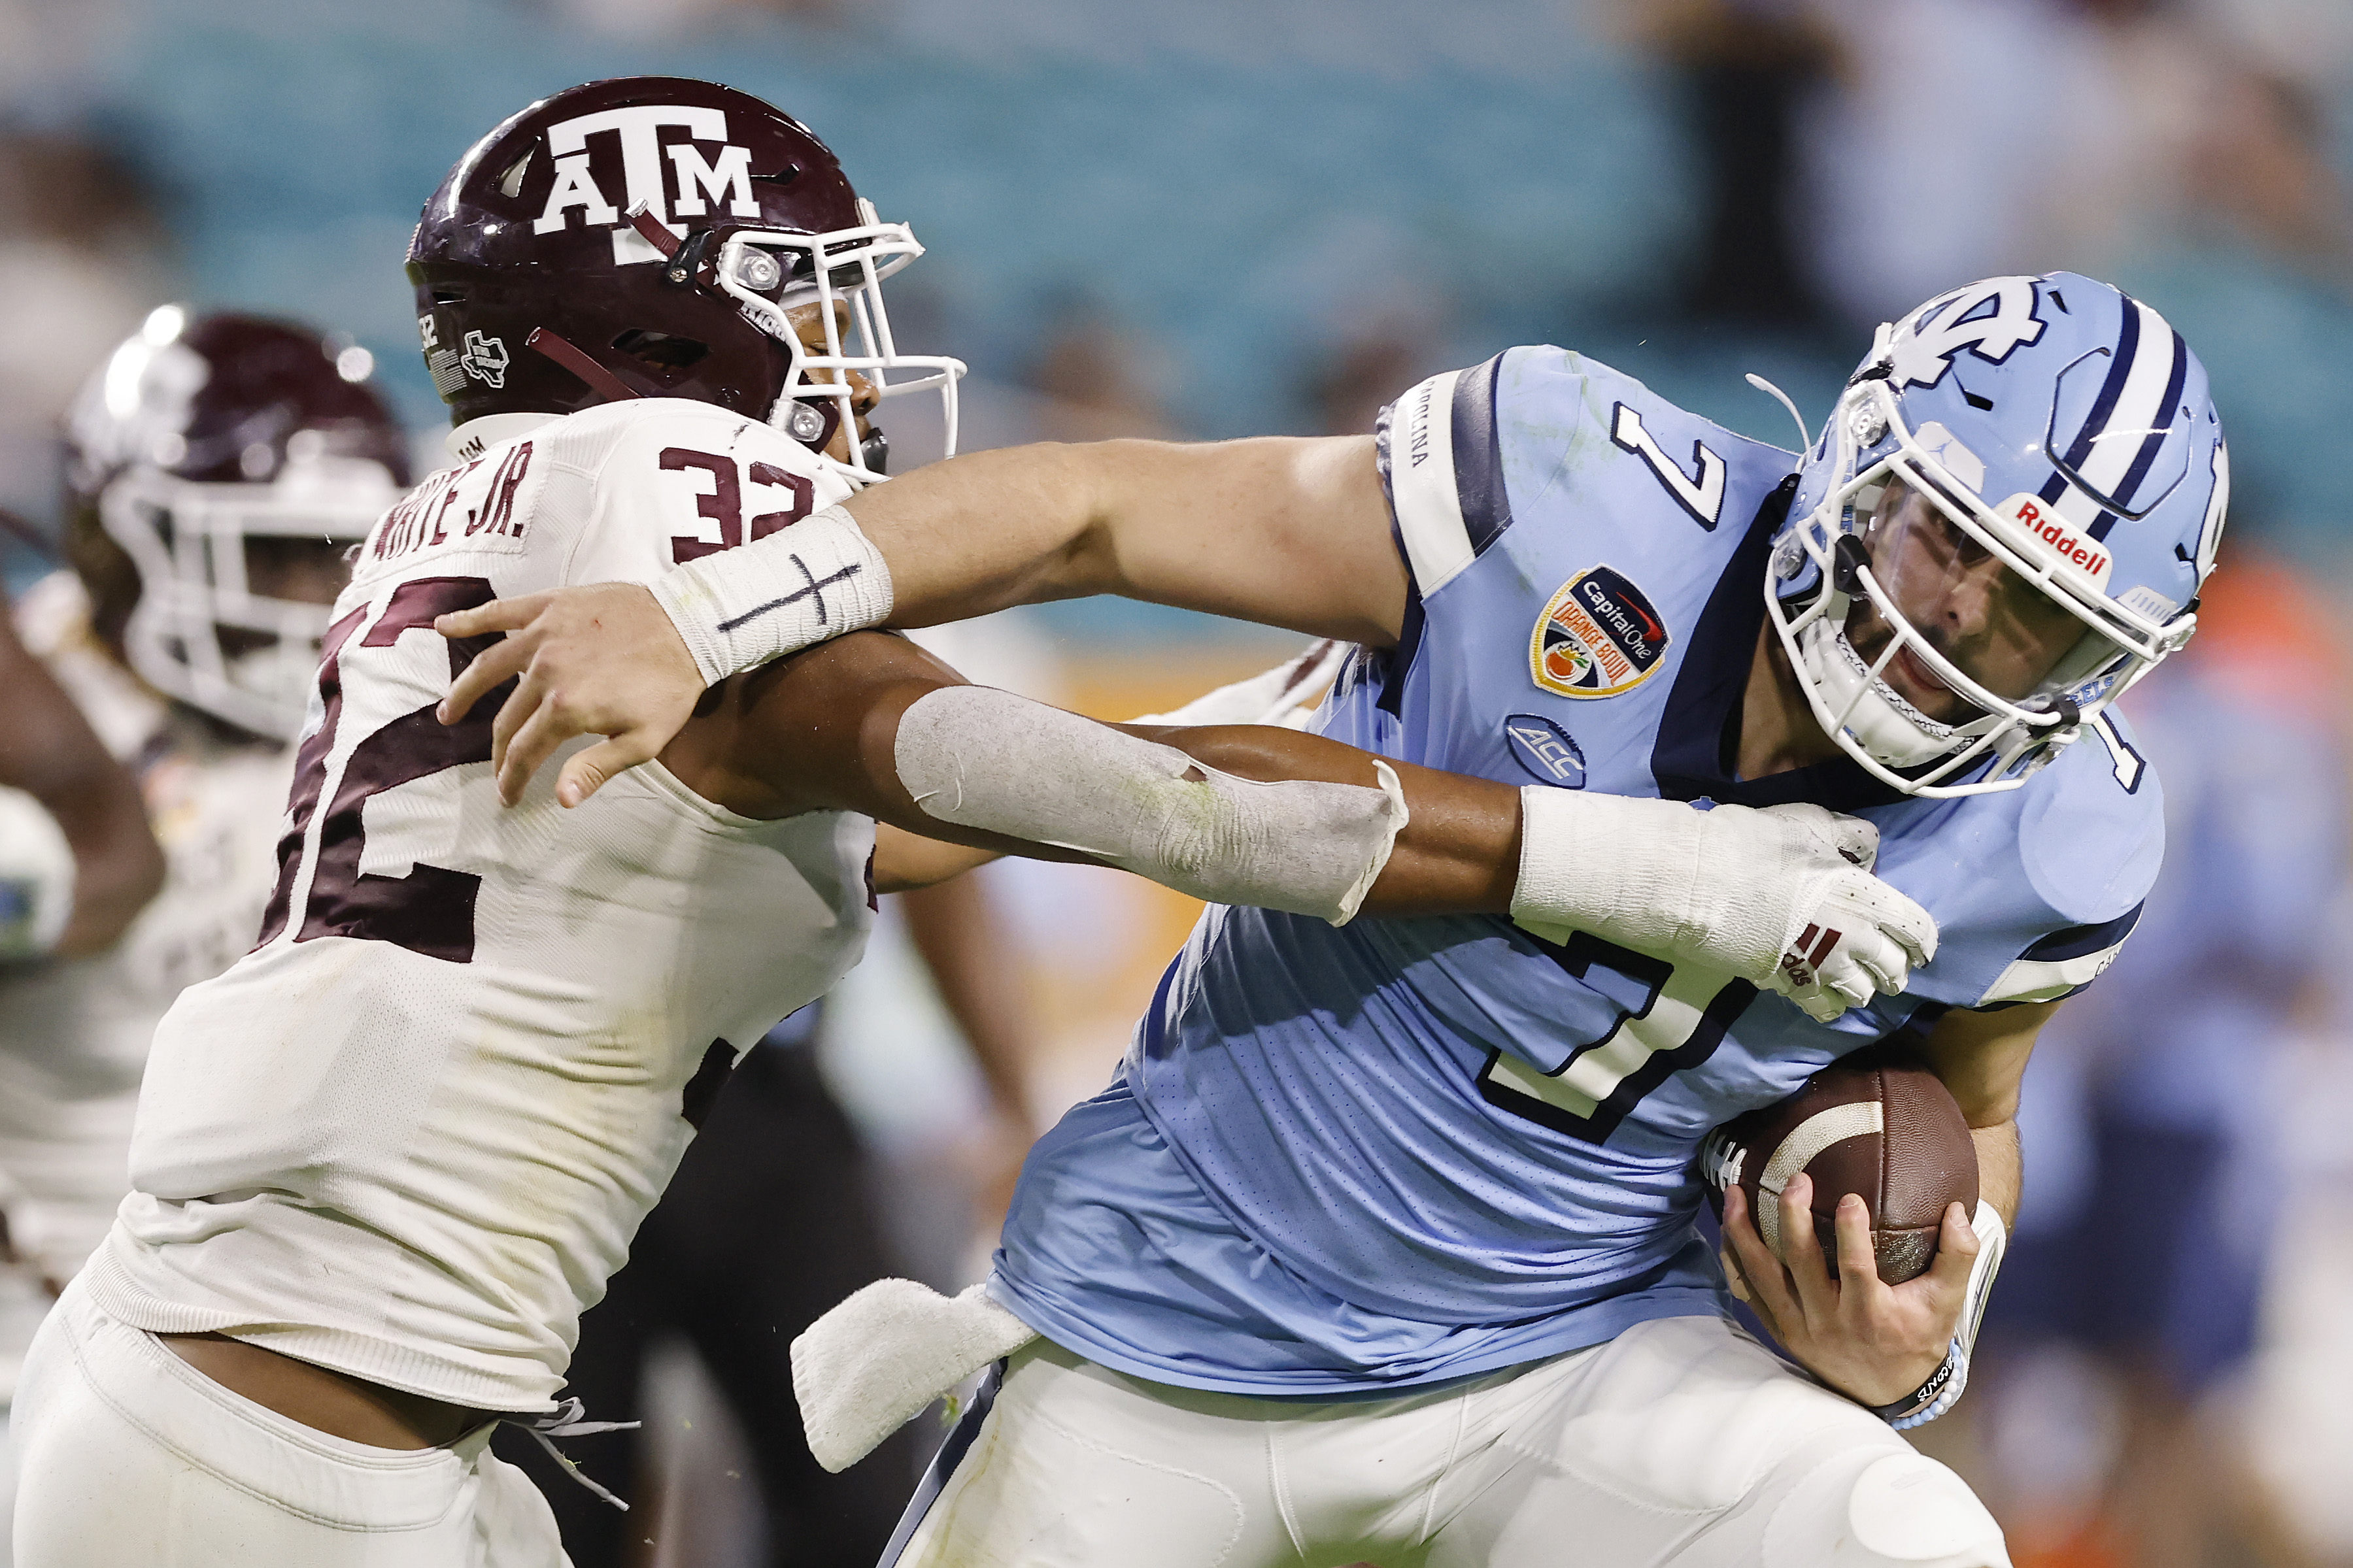 Capital One Orange Bowl - Texas A&M v North Carolina